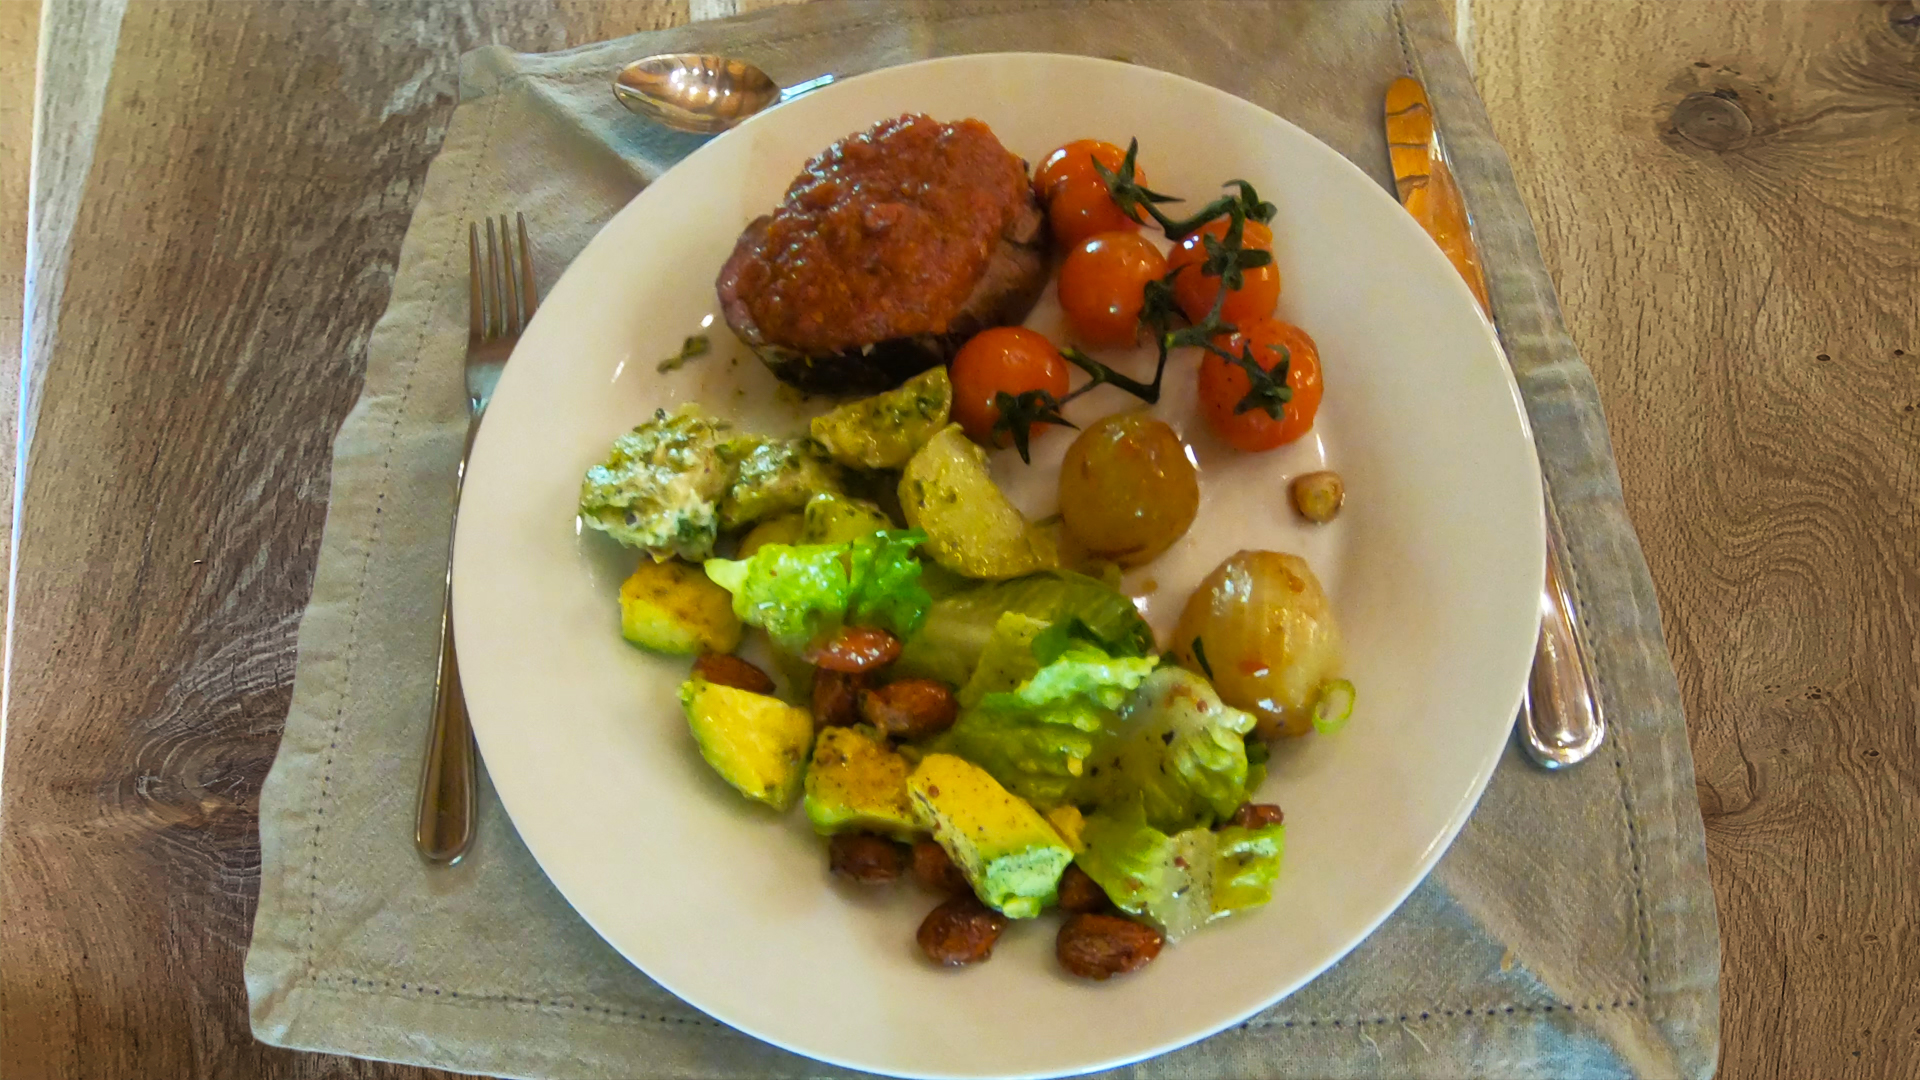 #ZZ2Festive Food main course of Chargrilled whole filled, caramelized onions, vine tomatoes, avocado salad, potatoes and potbrood with butter.